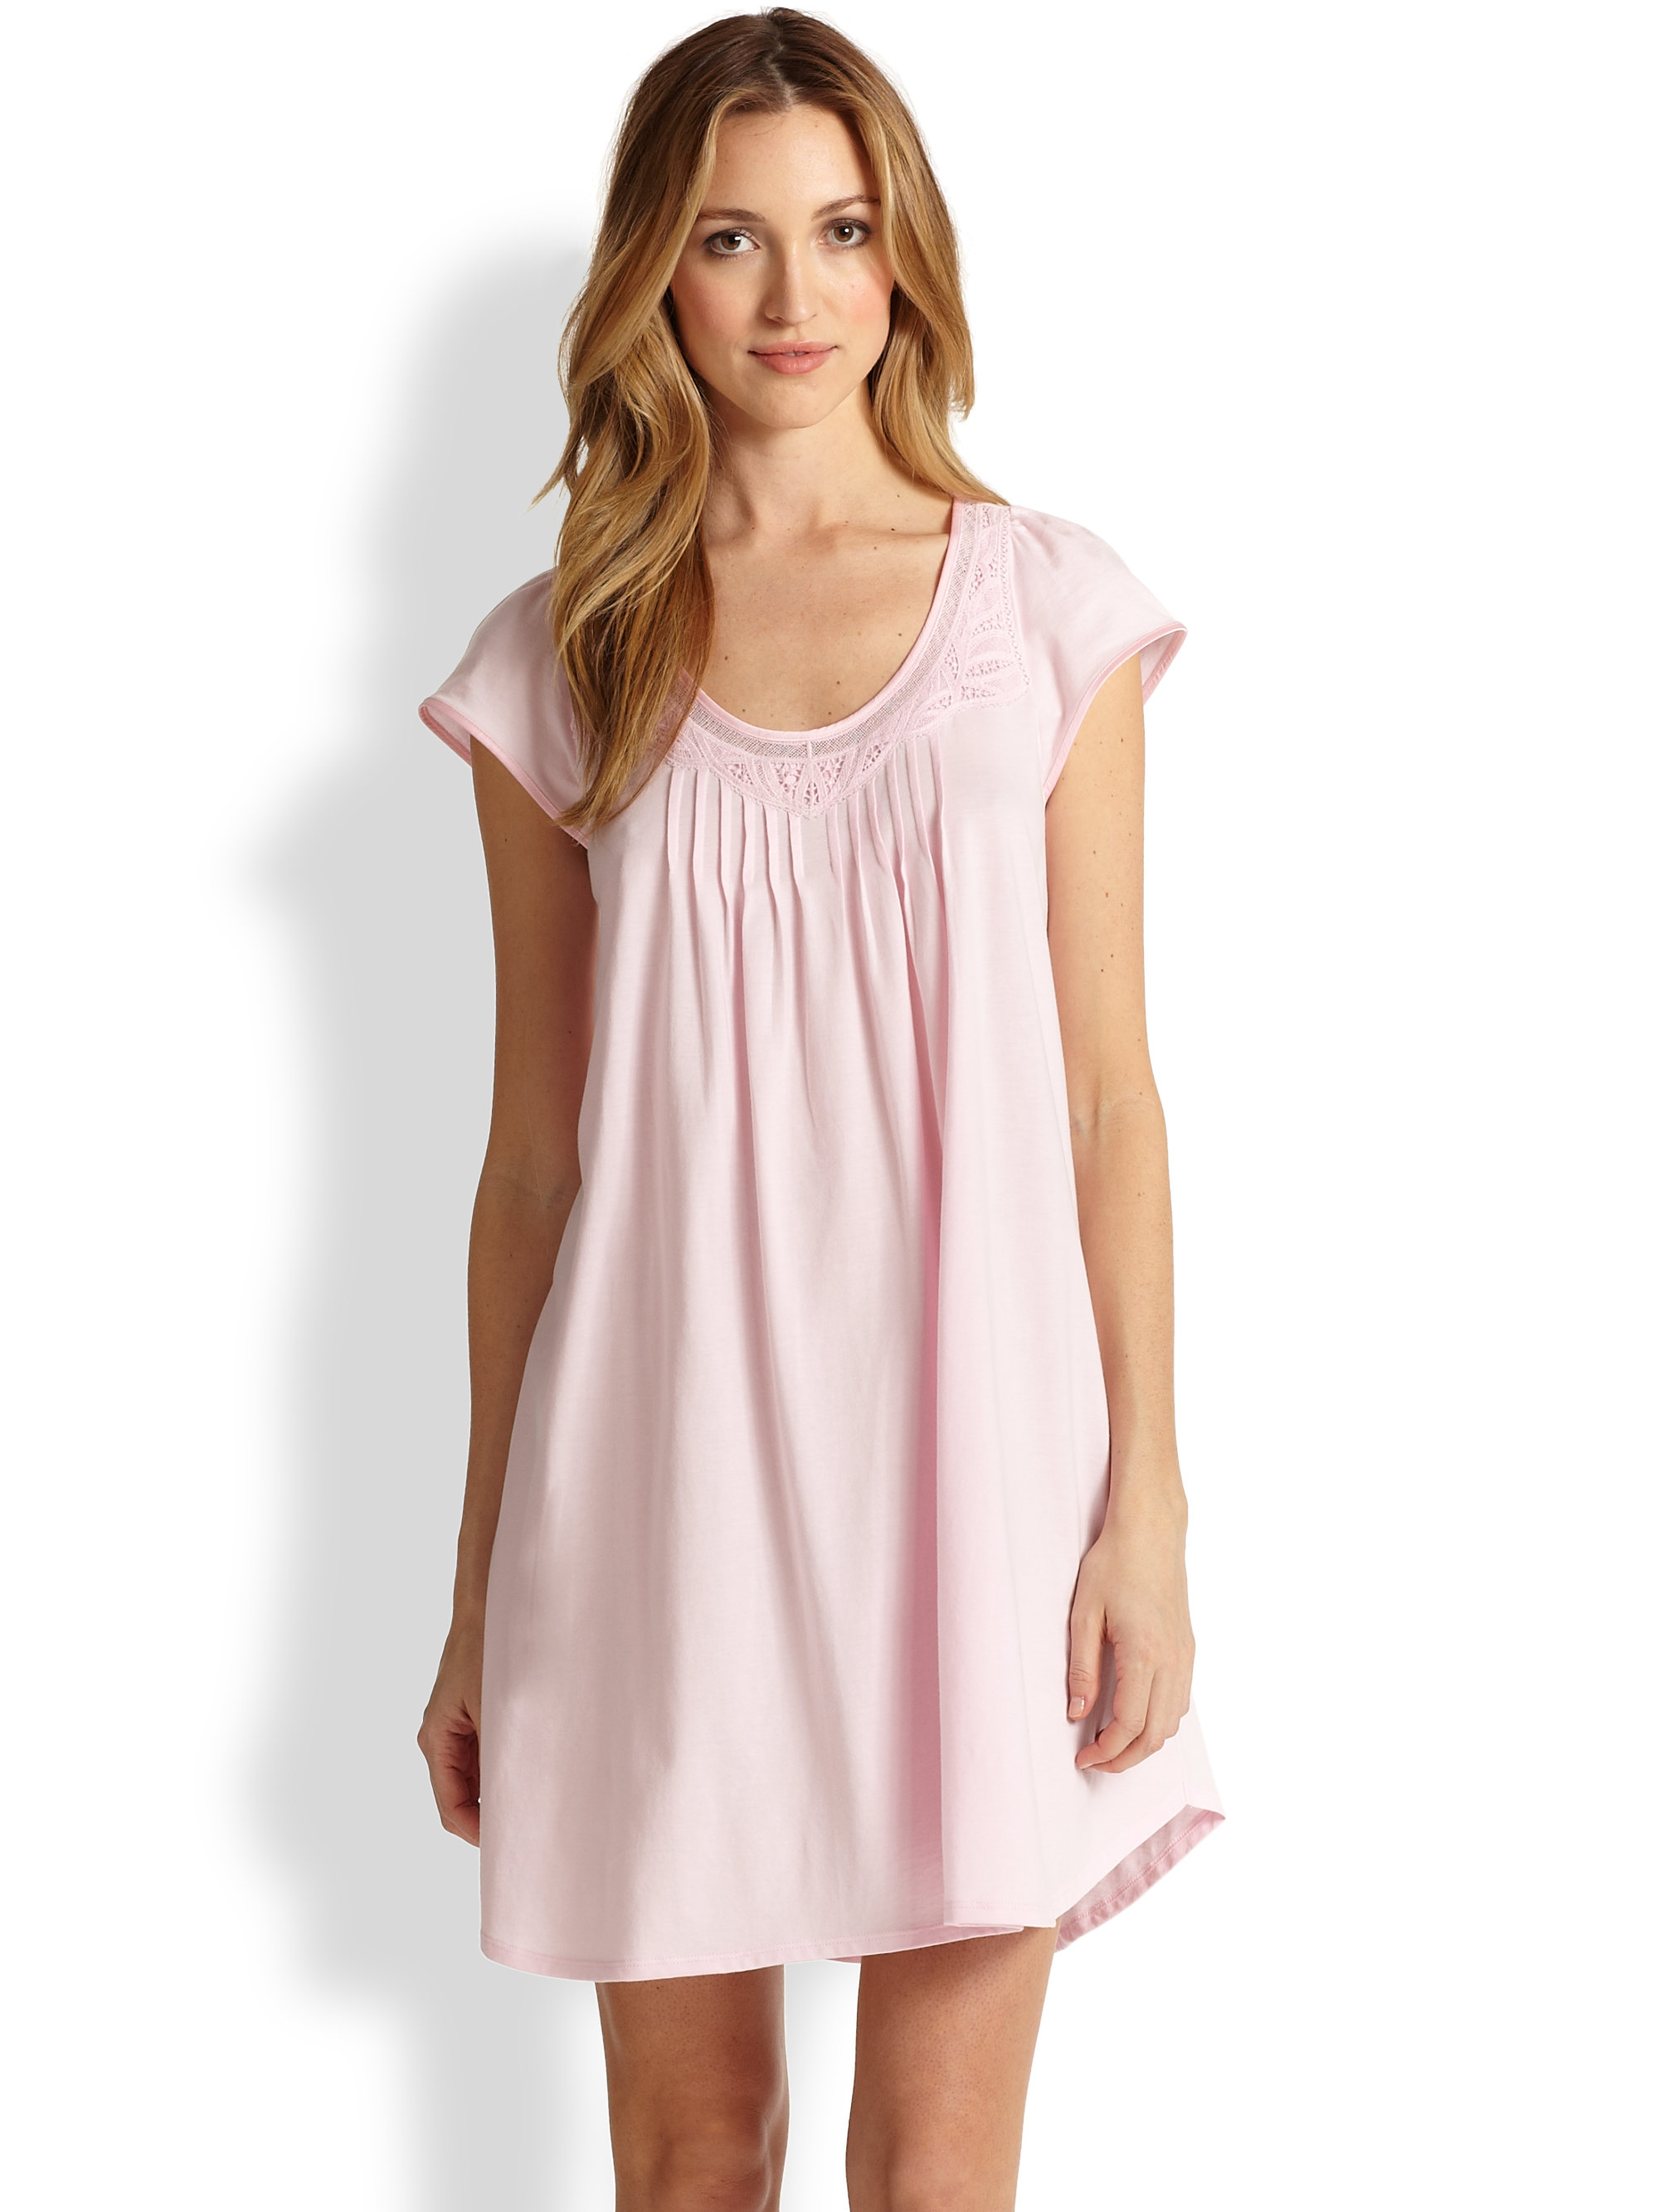 Lyst - Cottonista Cap Sleeve Gown in Pink